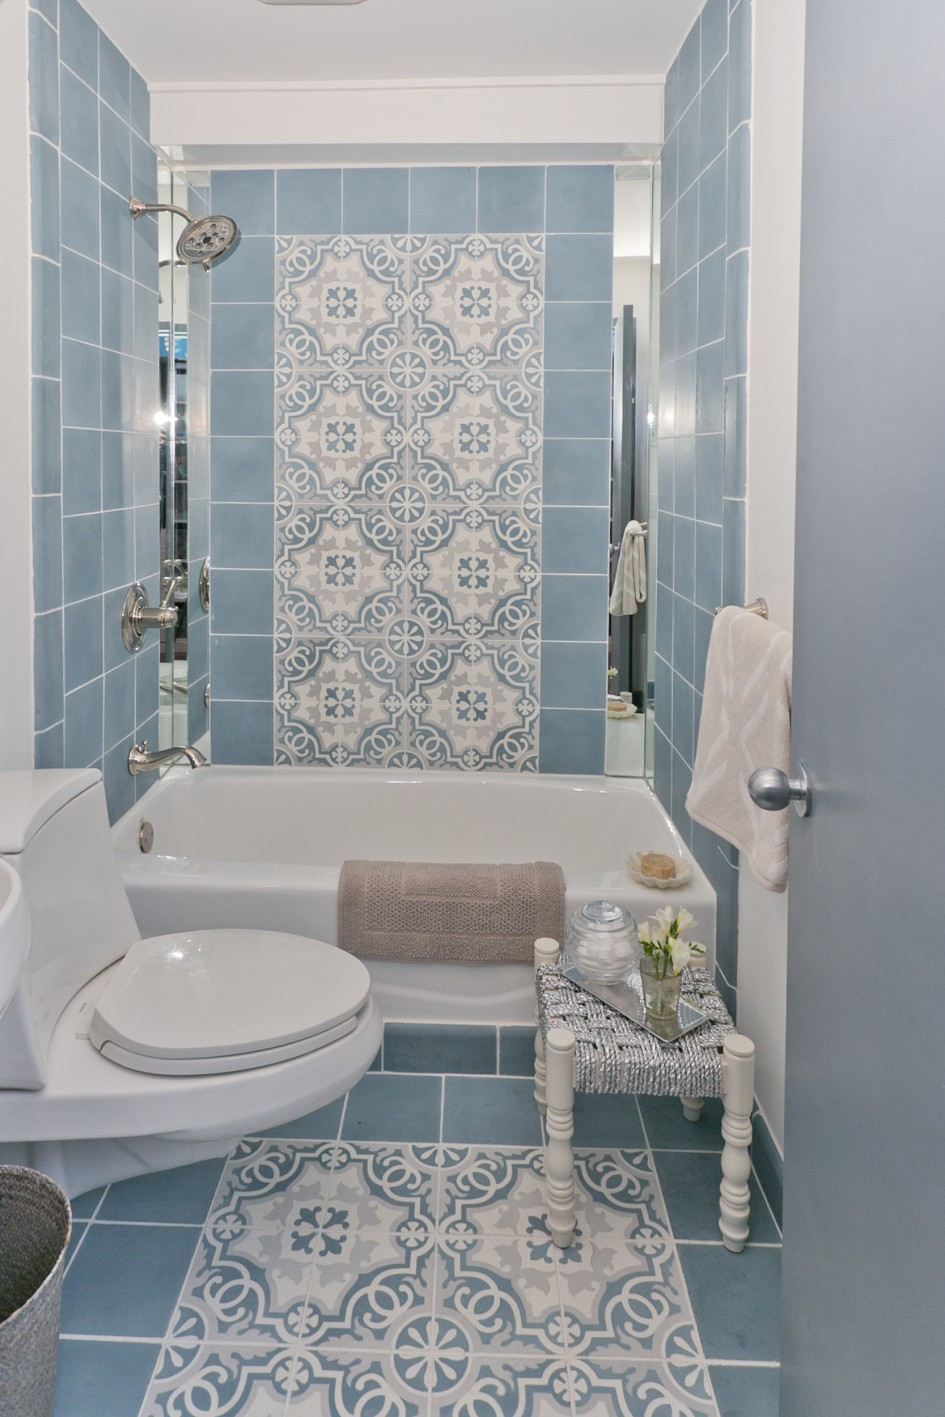 Beautiful Minimalist Blue Tile Pattern Bathroom Decor Also